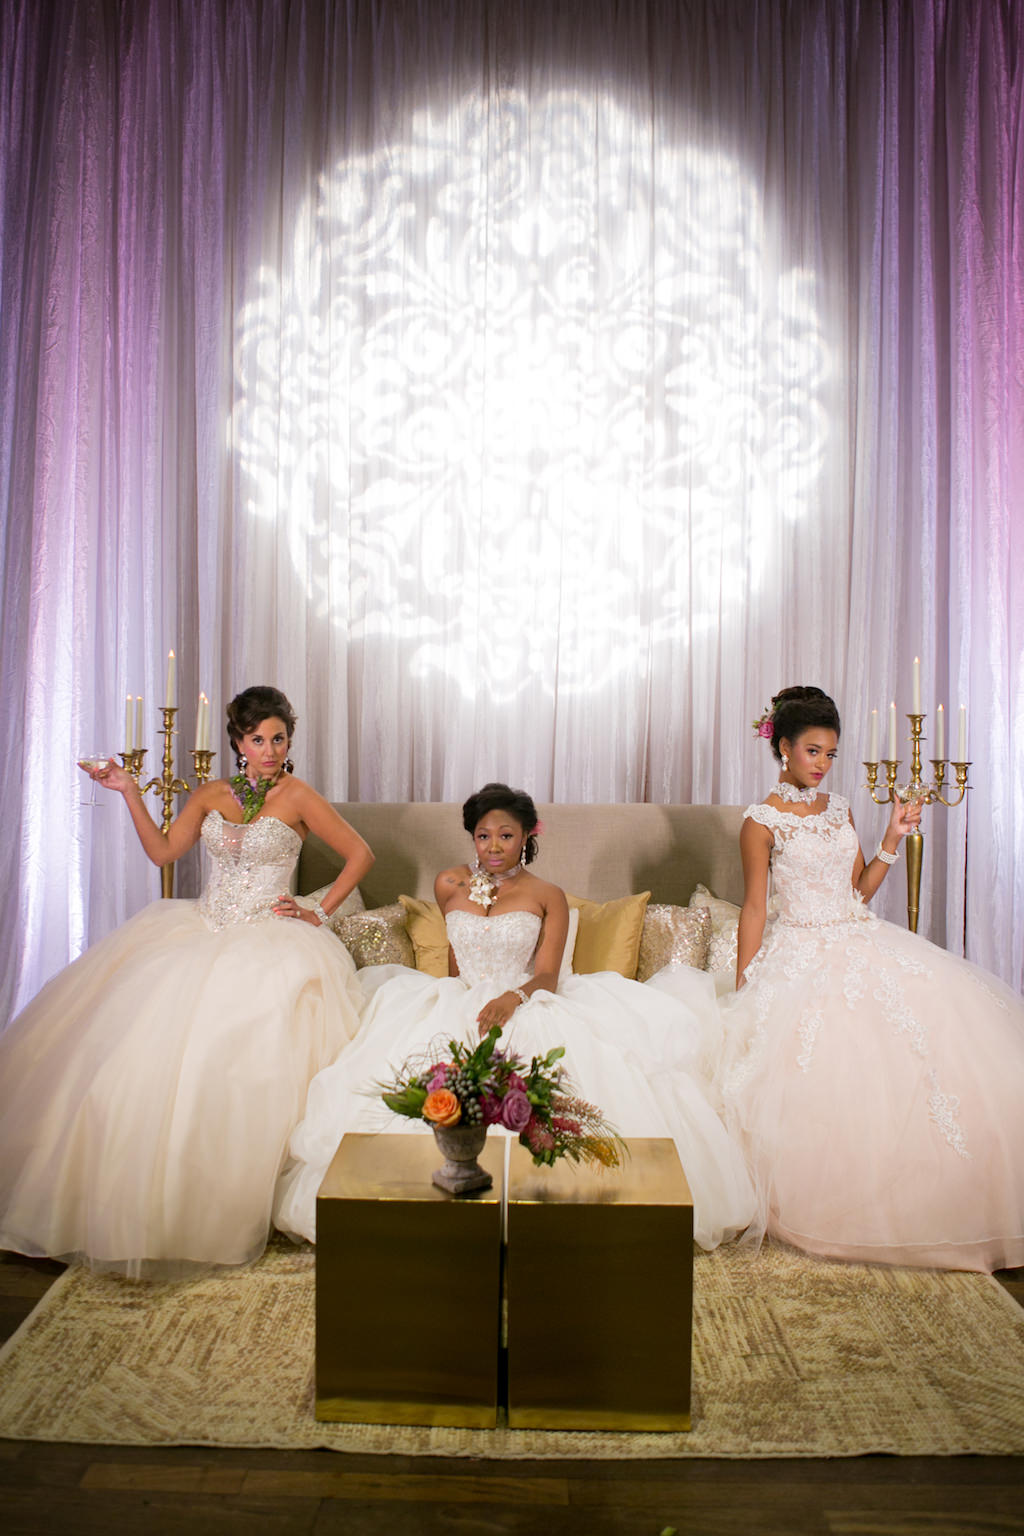 French Inspired Marie Antoinette Brides in Blush Ballgown Wedding Dresses with Tropical Florals and GOBO on Drapery | Tampa Bay Wedding Photographer Carrie Wildes Photography | Planner UNIQUE Weddings and Events | Dress Shop Truly Forever Bridal